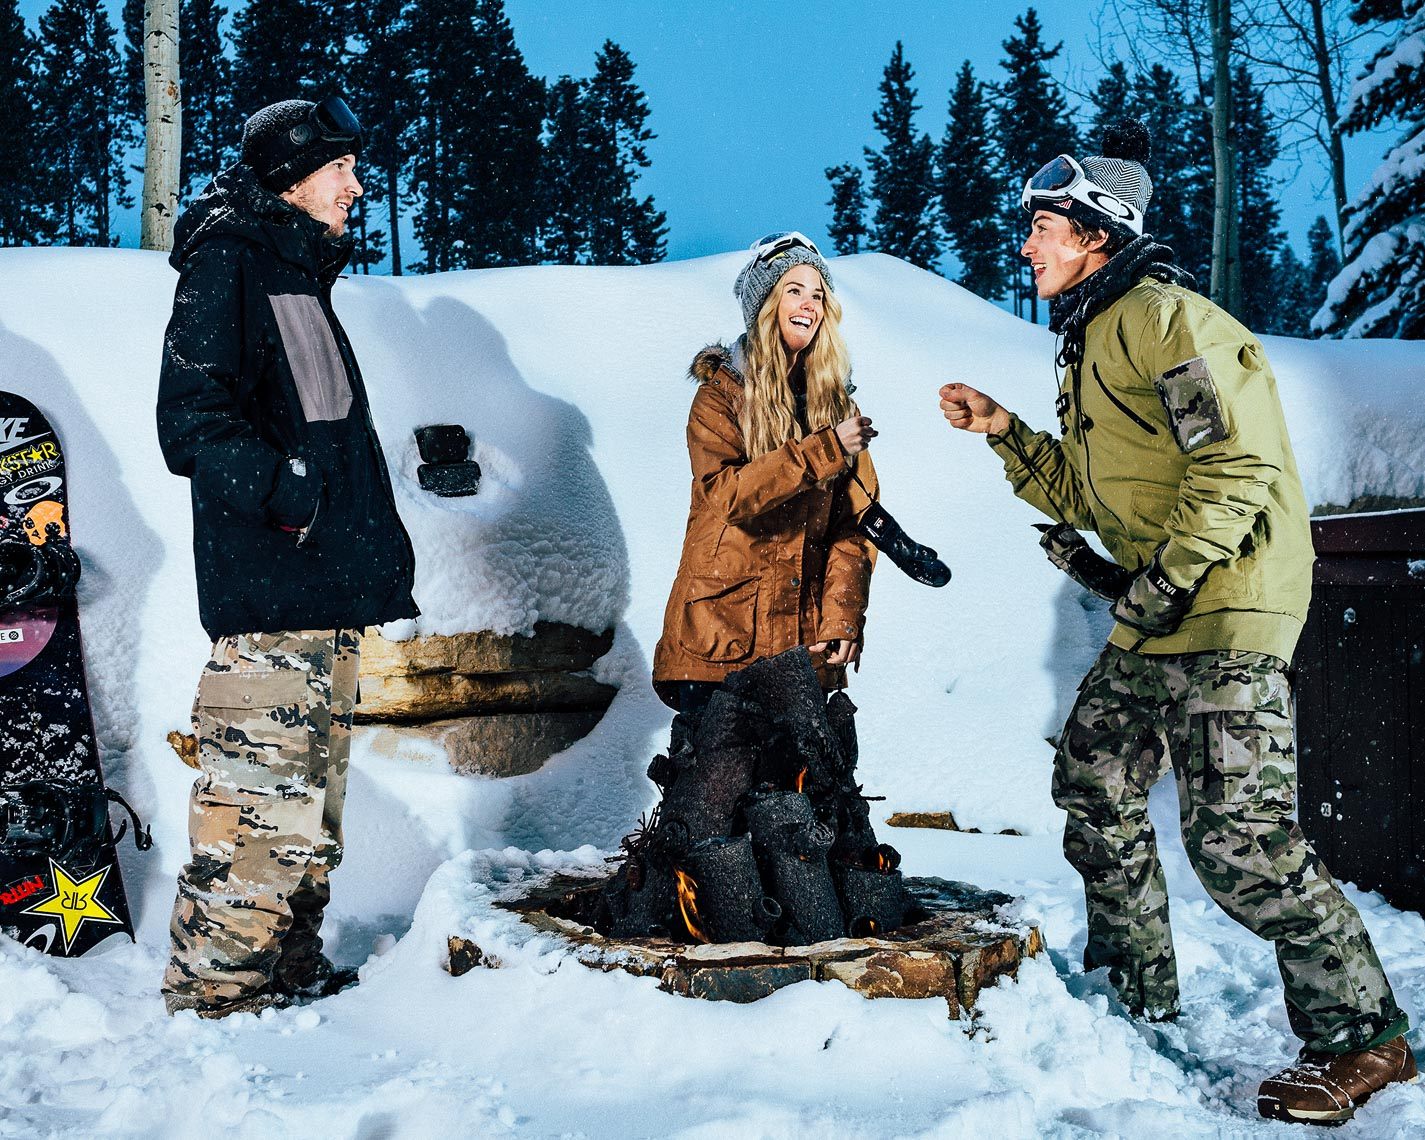 Mark McMorris, Aaron Bittner & Silje Norendal. Shot for Skullcandy.